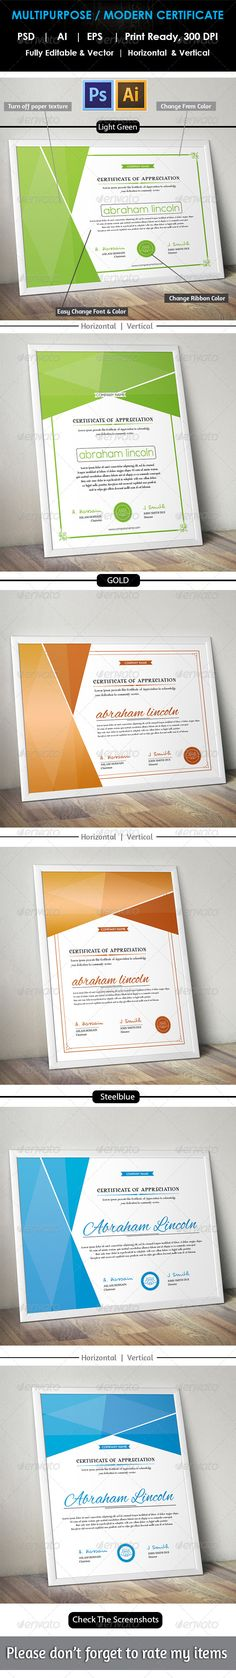 162 best Certificate Template Design images on Pinterest     Simple Multipurpose Certificate GD012   PSD Template     Only available here         http